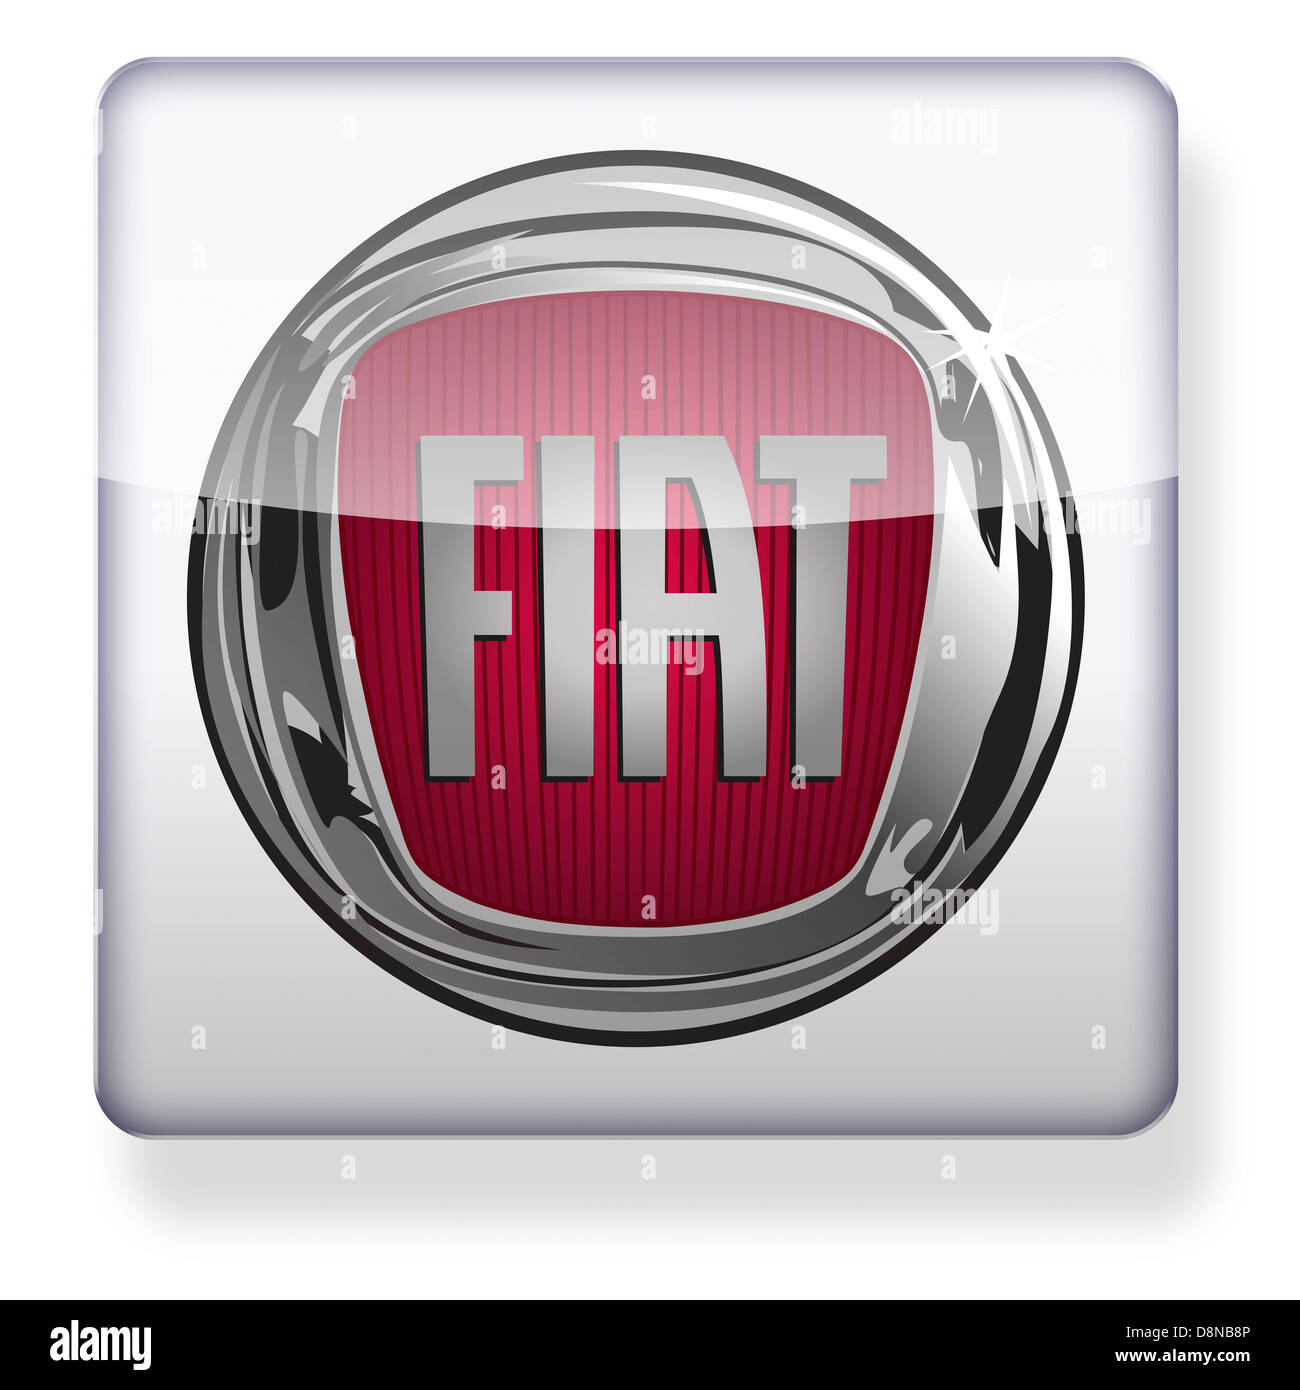 Fiat logo as an app icon. Clipping path included. - Stock Image